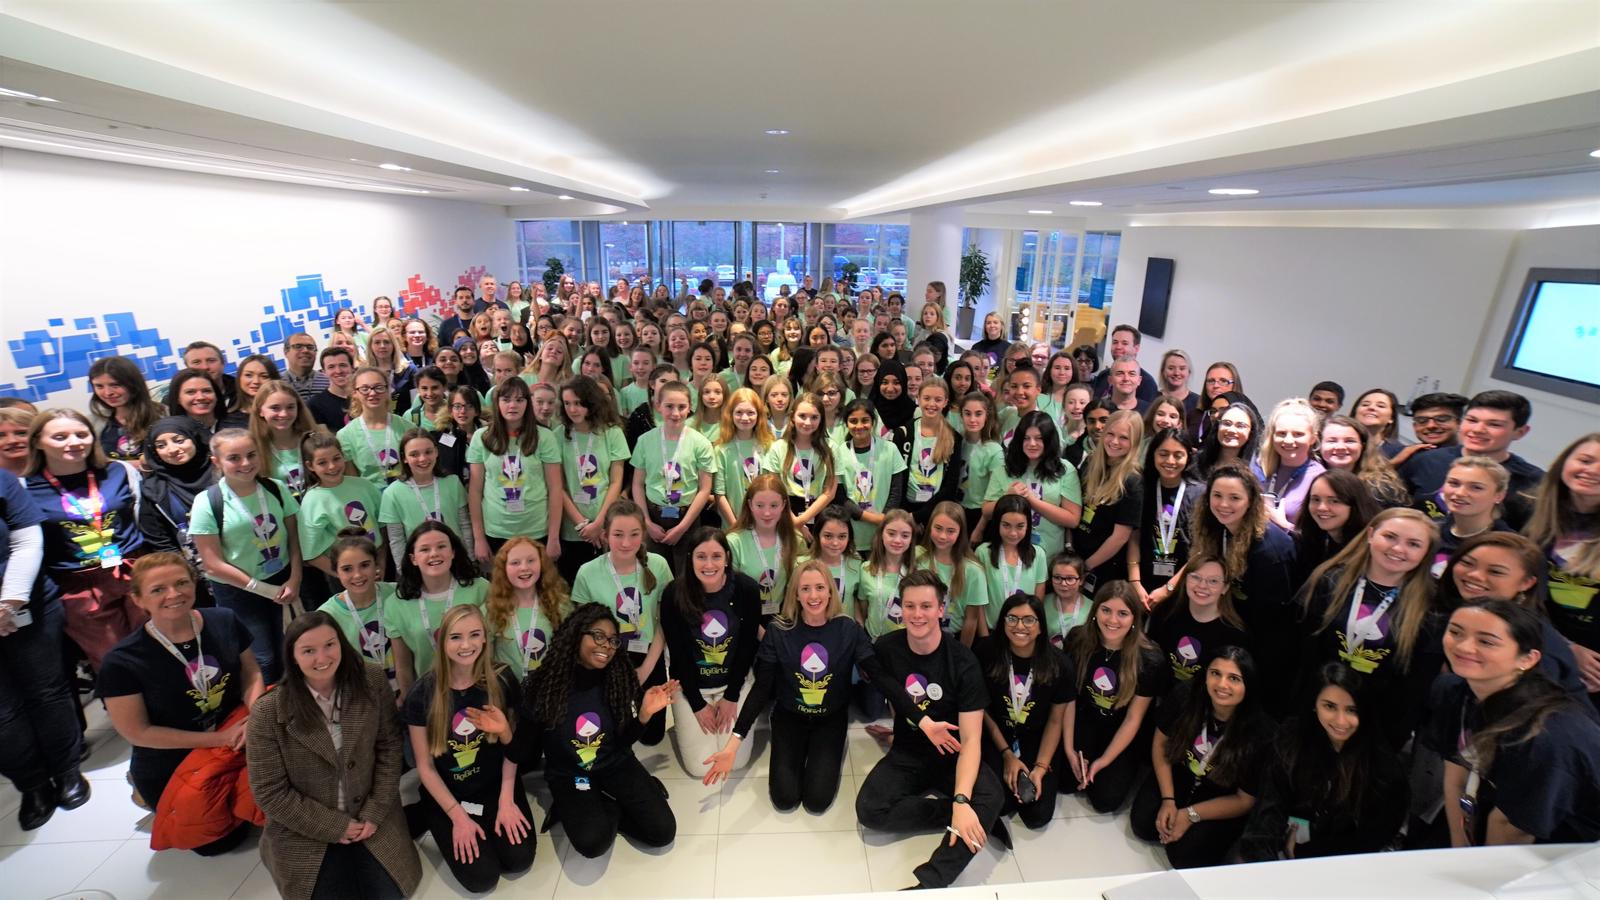 Image of a large group of people at the DigiGirlz event to encourage young girls to pursue STEM careers.